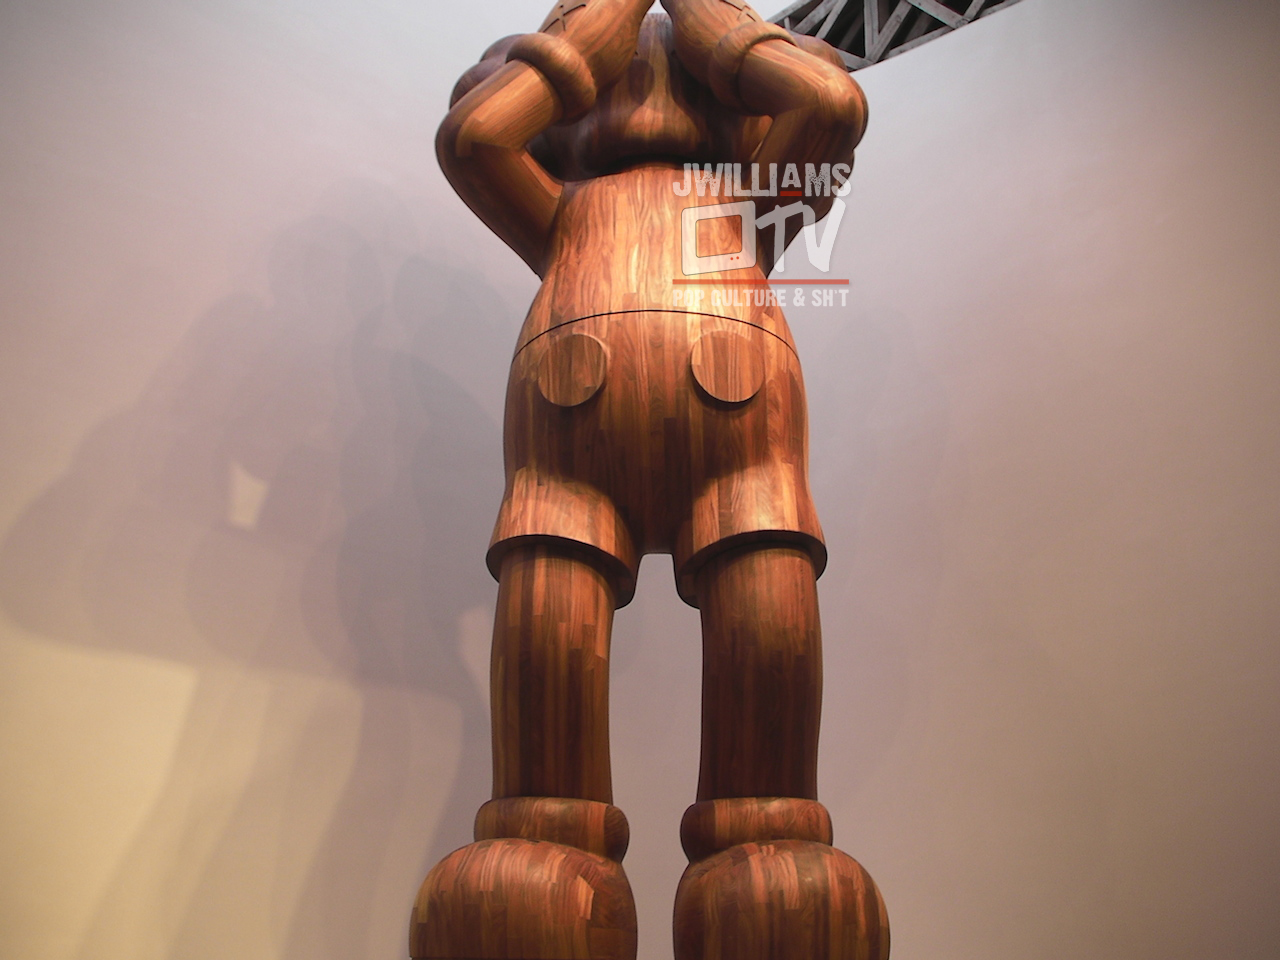 """Kaws' """"AT THIS TIME"""" at the Mary Boone Gallery in New York City"""